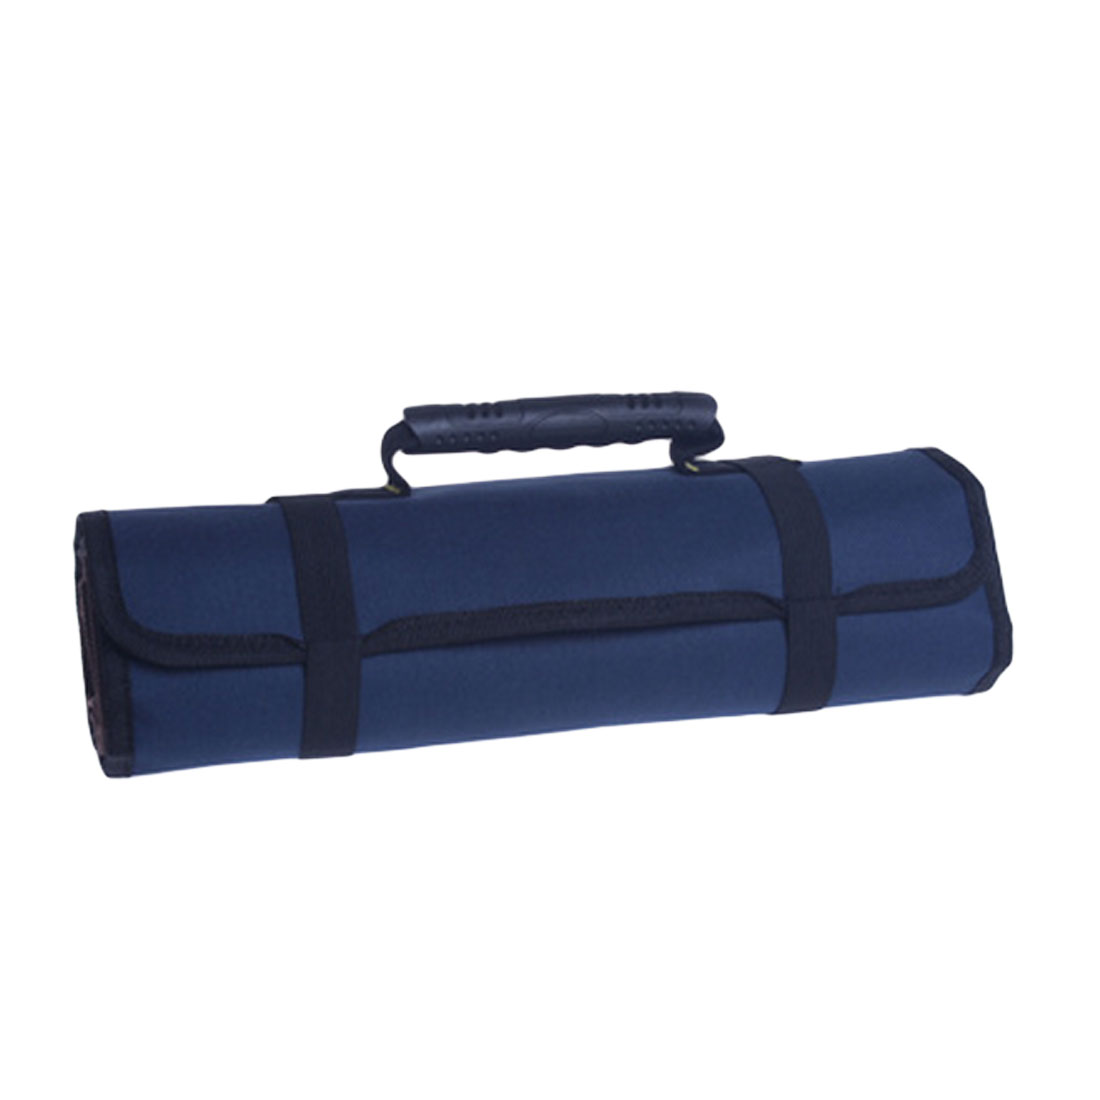 Repairing Tool Utility Tool Bag Multifunctional Oxford Canvas Chisel Roll Rolling Practical With Carrying Handles